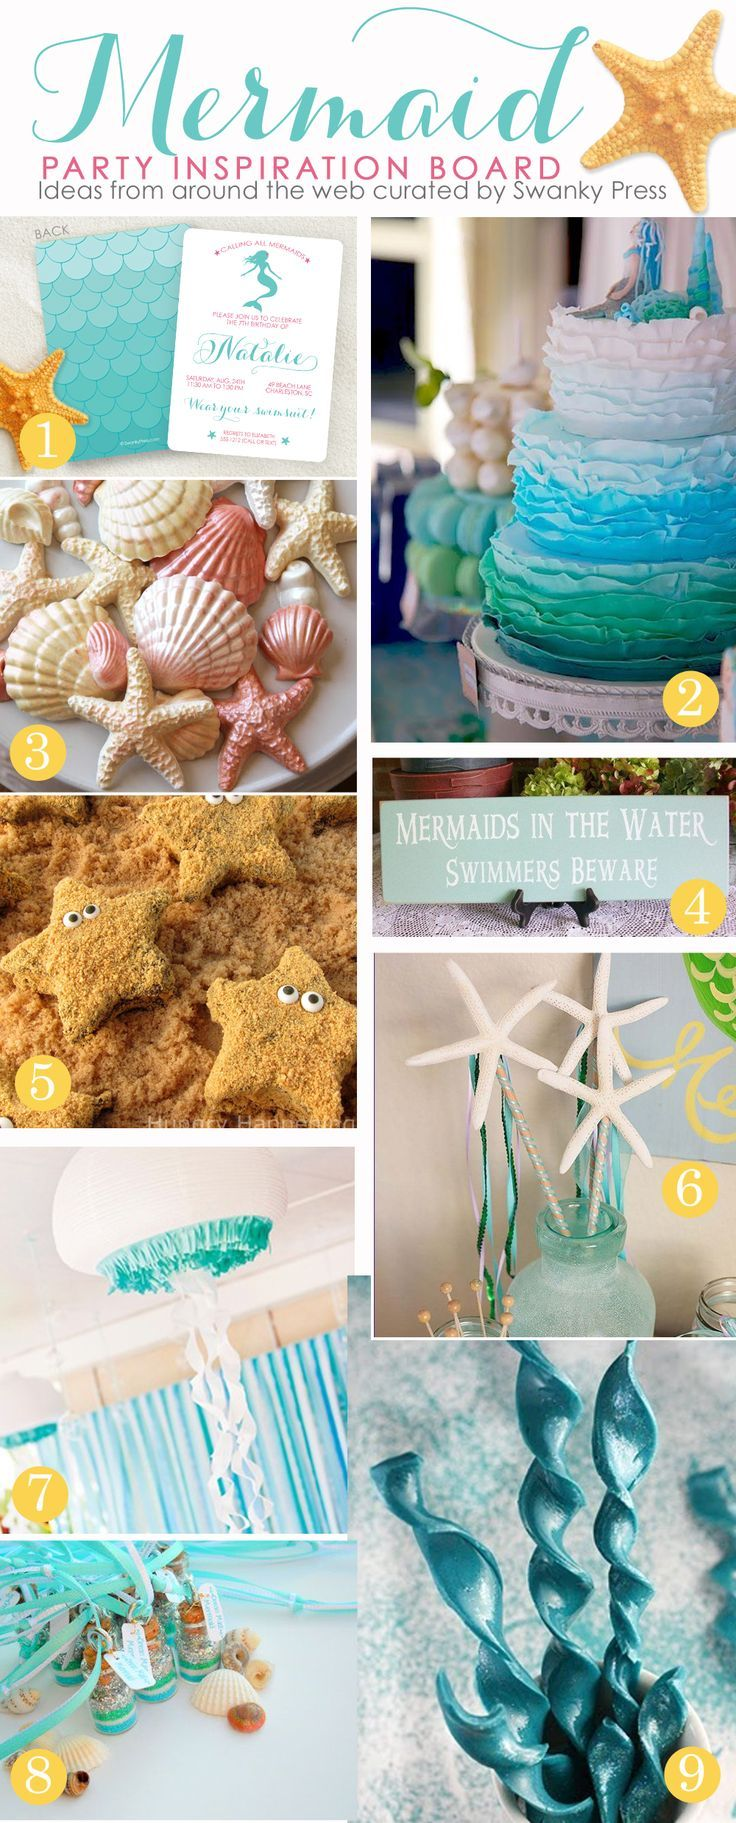 Mermaid party inspiration board.